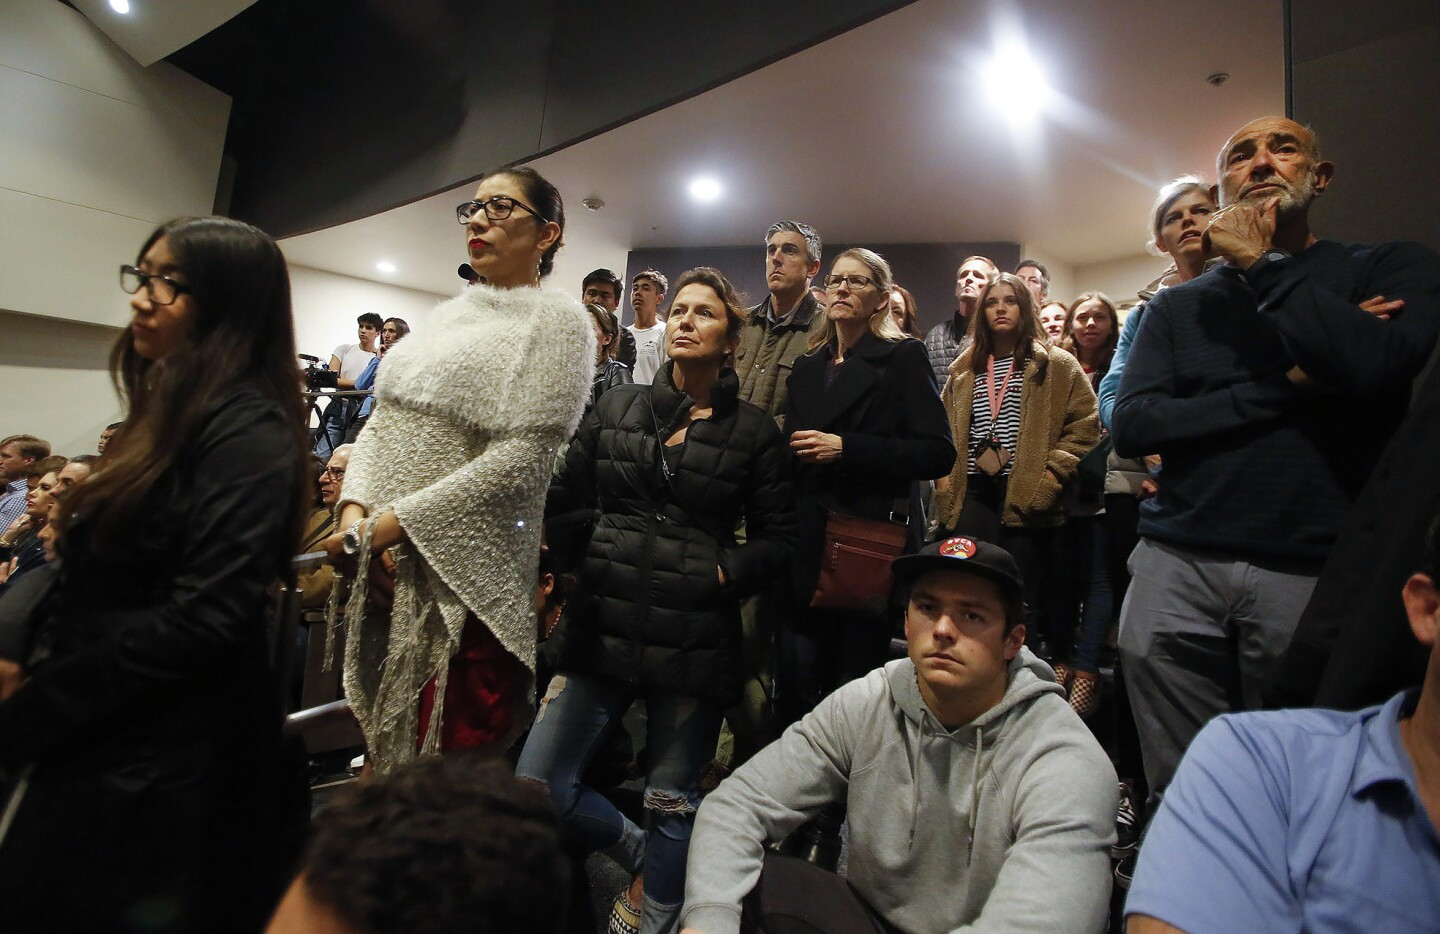 Students, parents and other members of the community listen to a town hall-style discussion Monday night at Newport Harbor High School concerning pictures that emerged from an off-campus party that showed students saluting a swastika made of red cups.